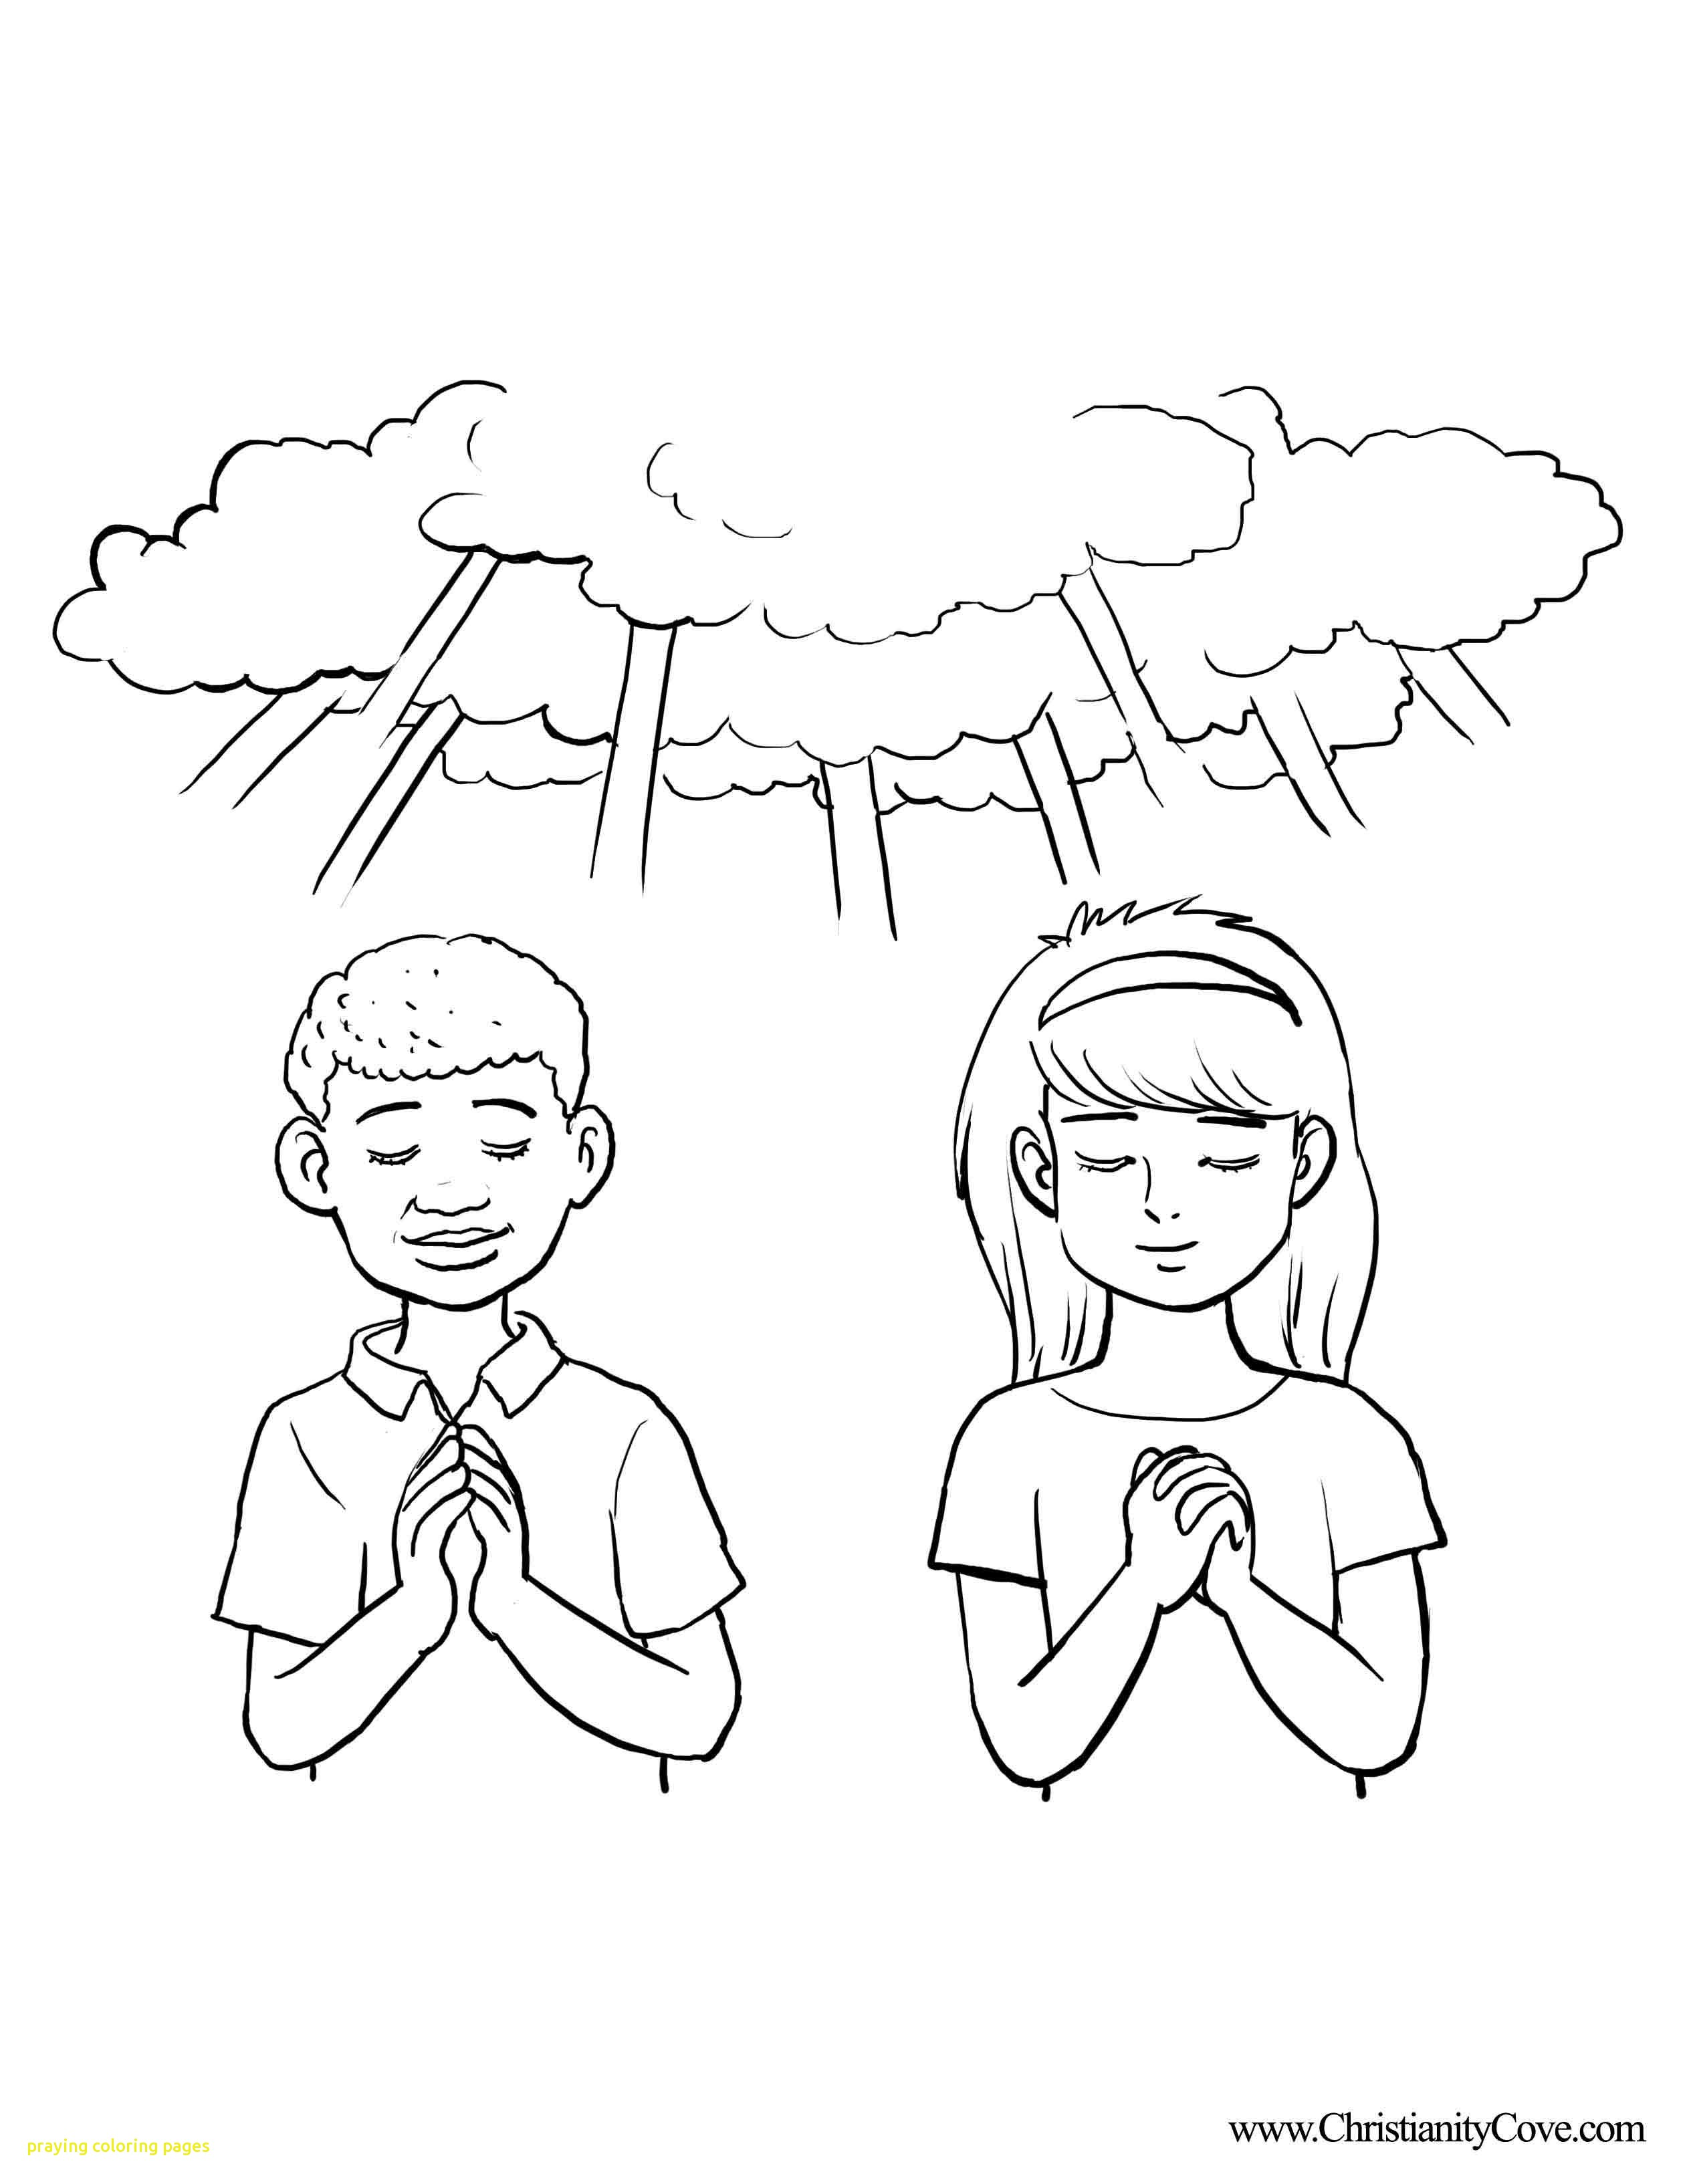 2529x3267 Praying Coloring Pages With Boy Praying Coloring Page Coloring